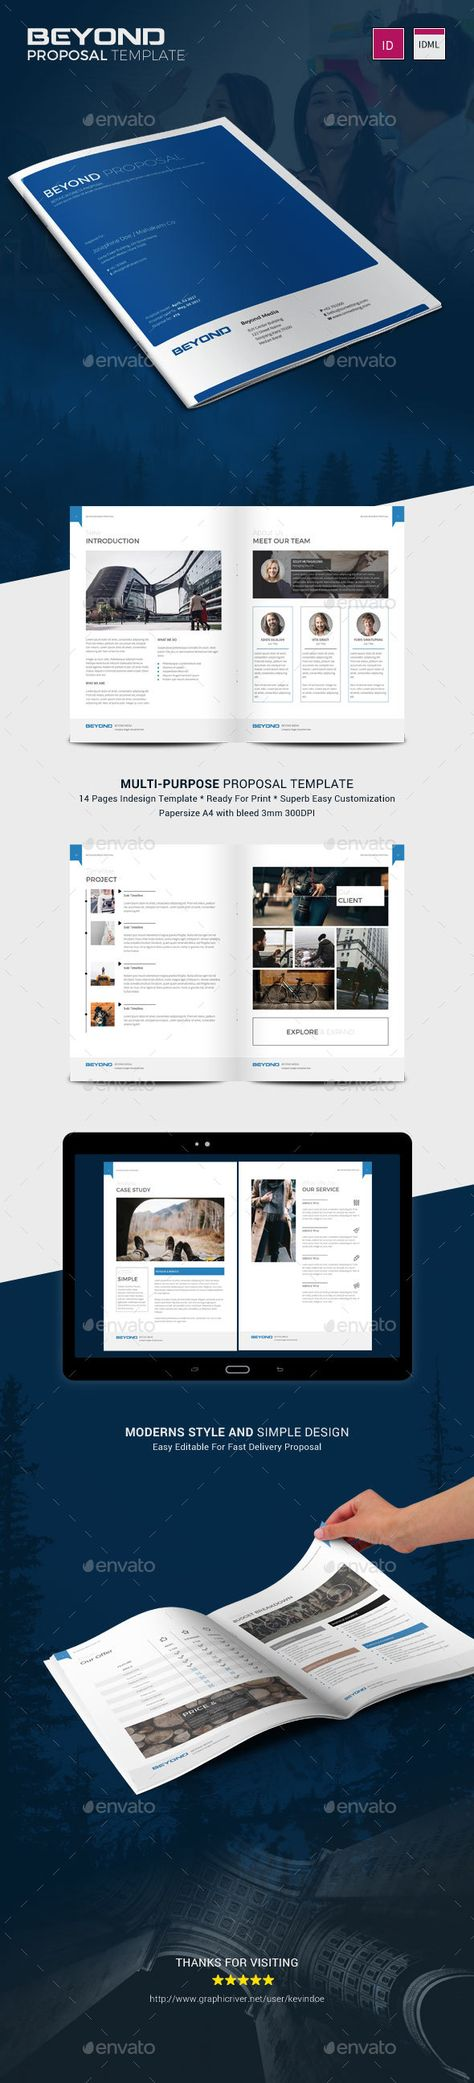 free proposal template%0A     best Business proposals images on Pinterest   Proposal templates   Invoice template and Business proposal